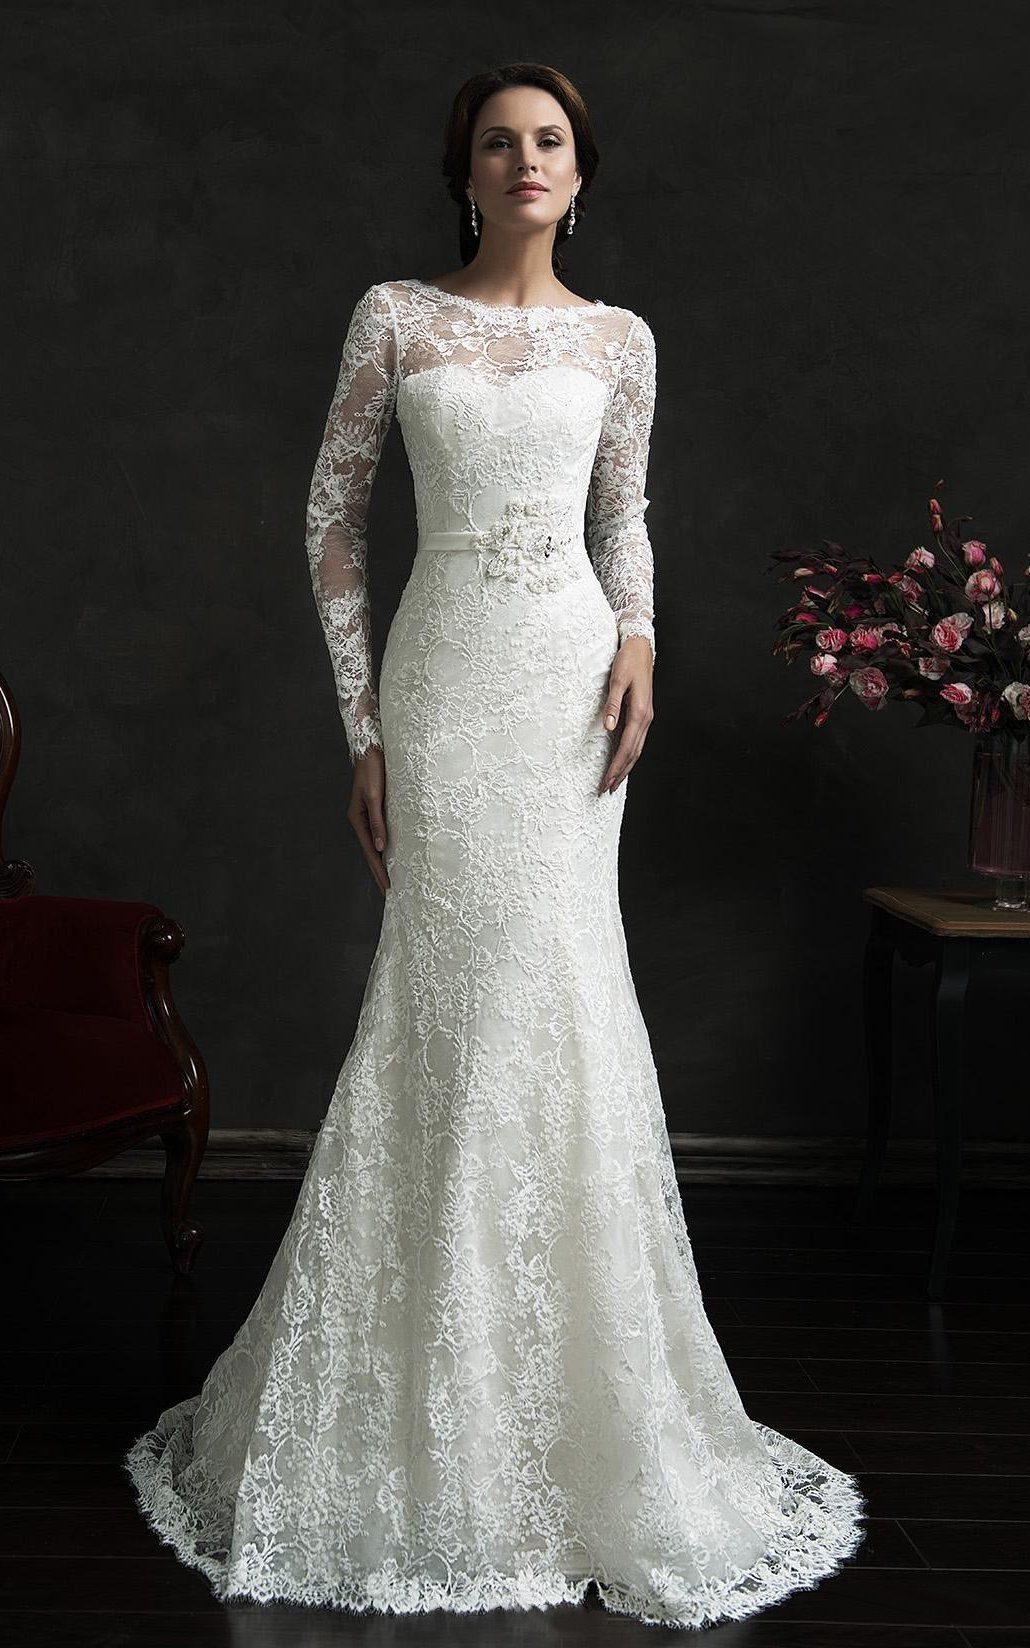 Long Sleeve Illusion Back Mermaid Lace Dress with Court